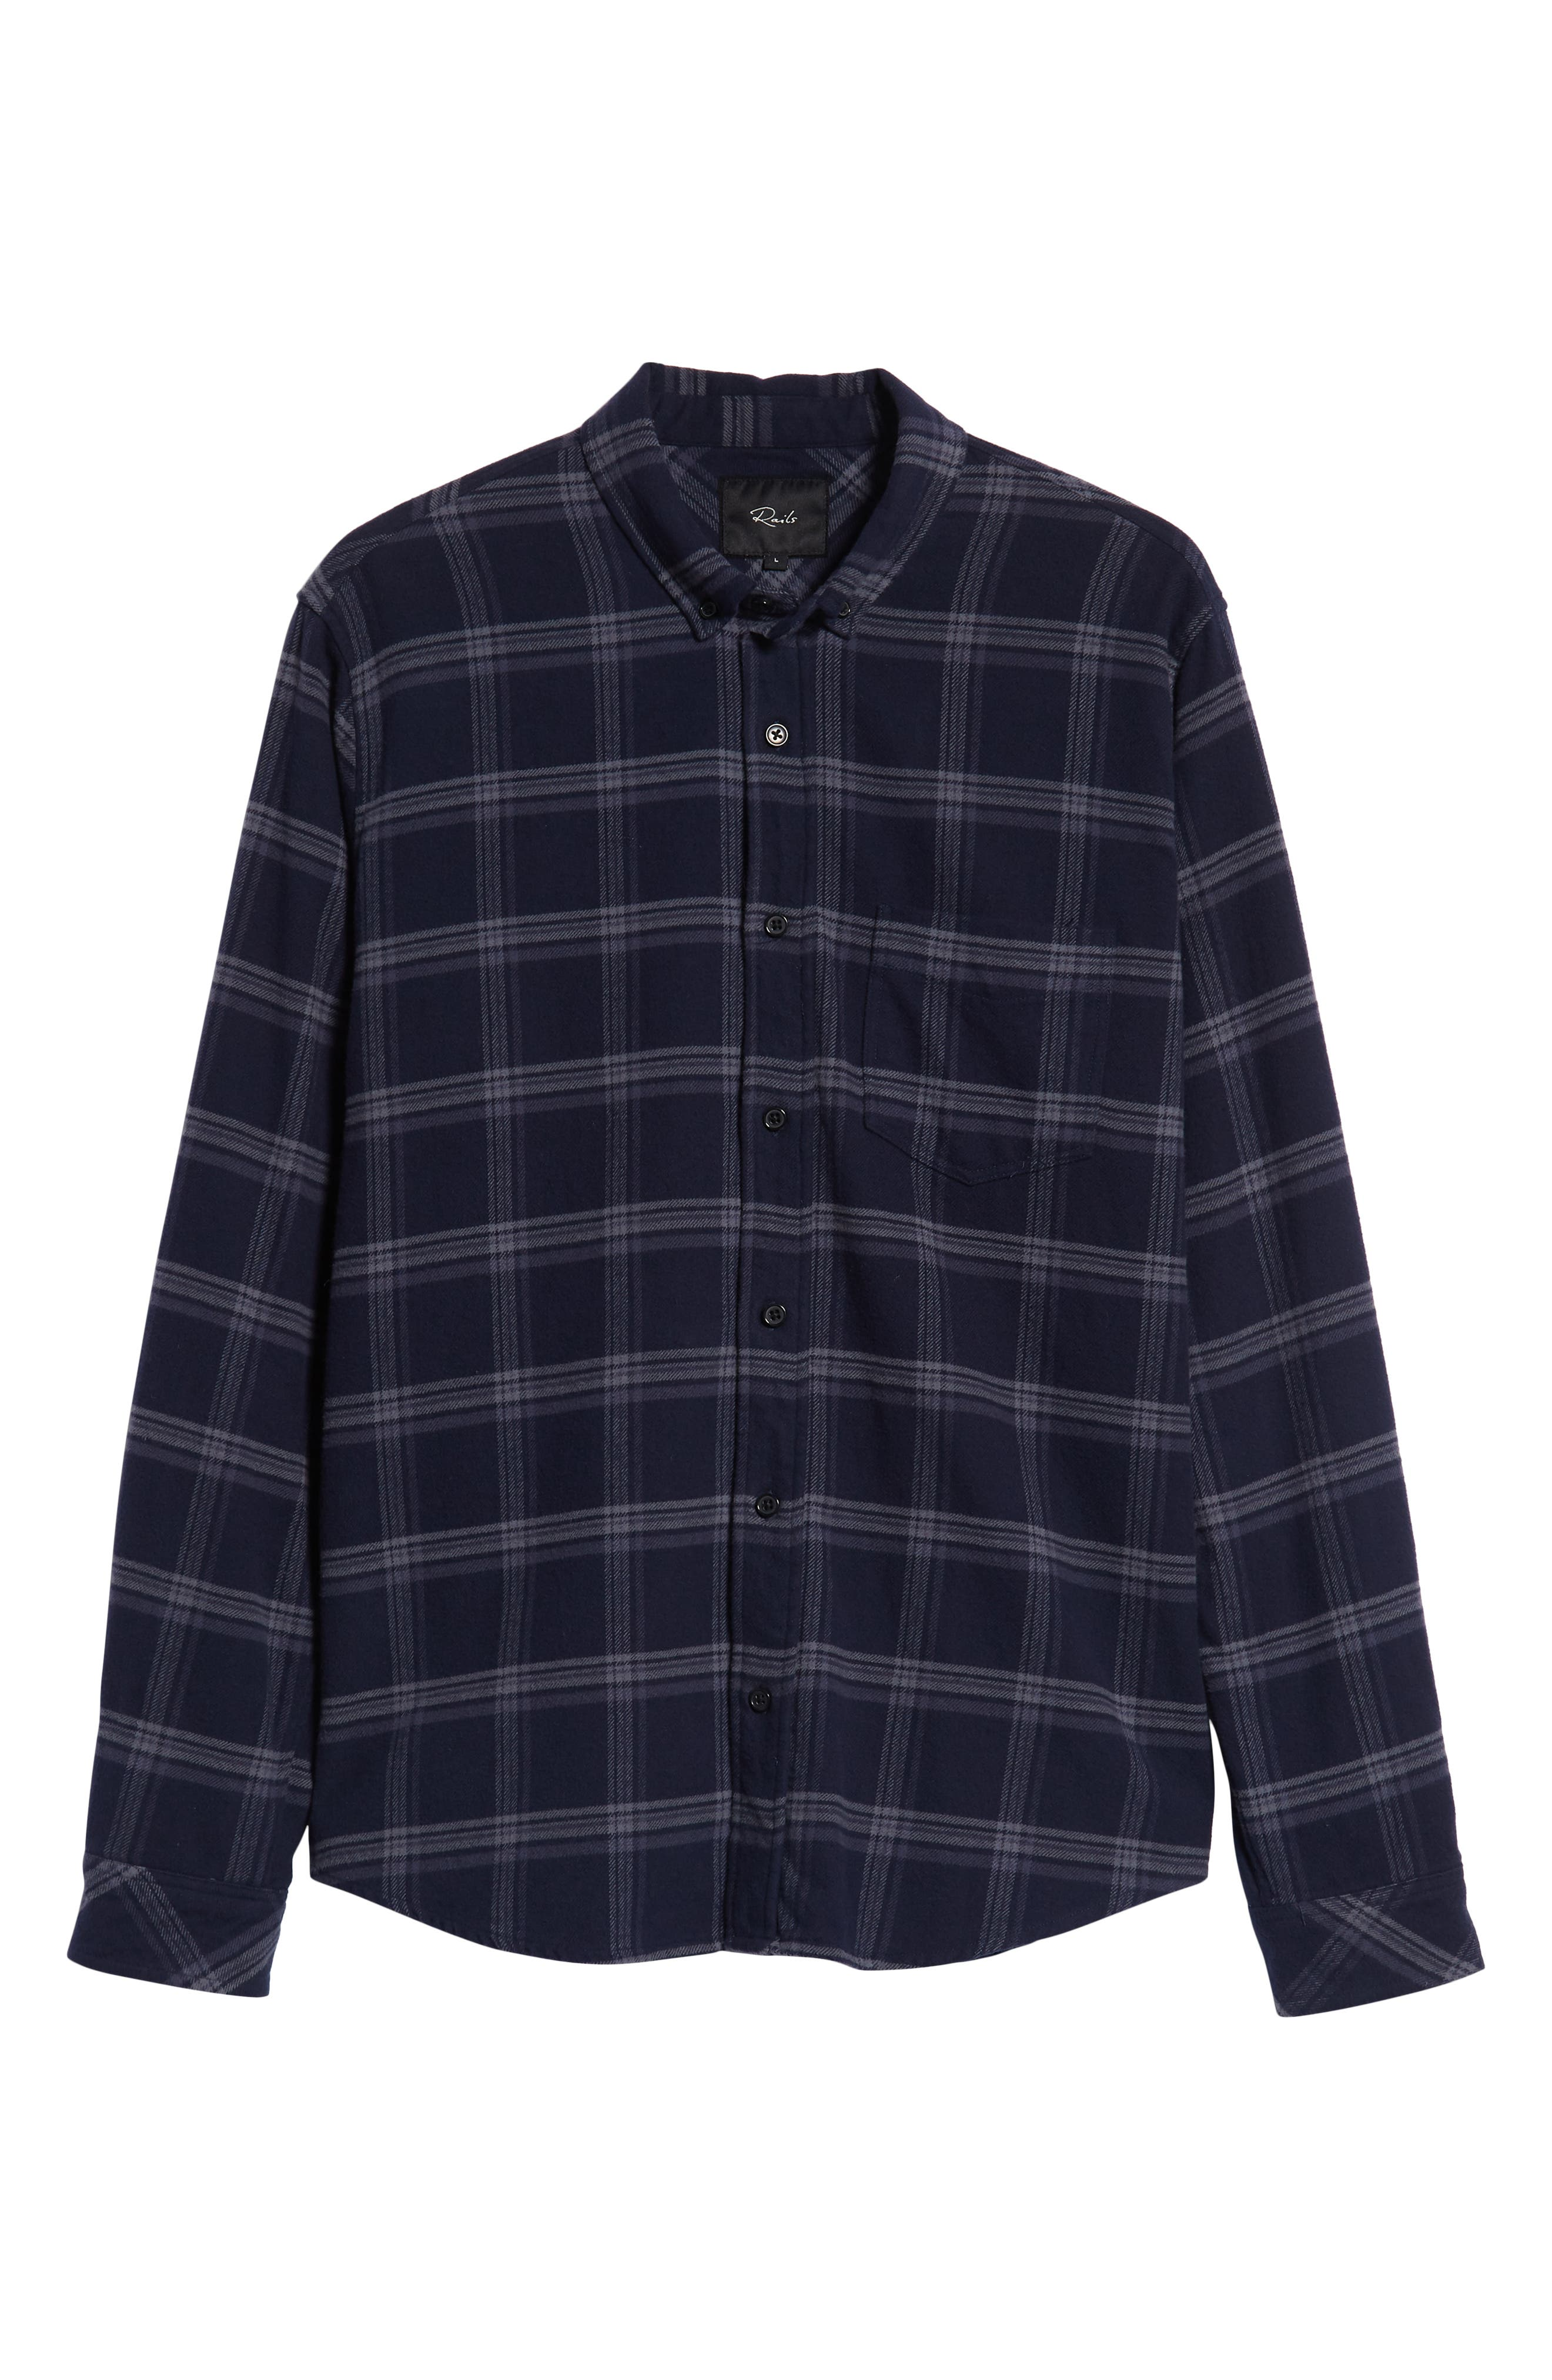 Forrest Slim Fit Plaid Flannel Sport Shirt,                             Alternate thumbnail 5, color,                             NAVY/HEATHERED CHARCOAL